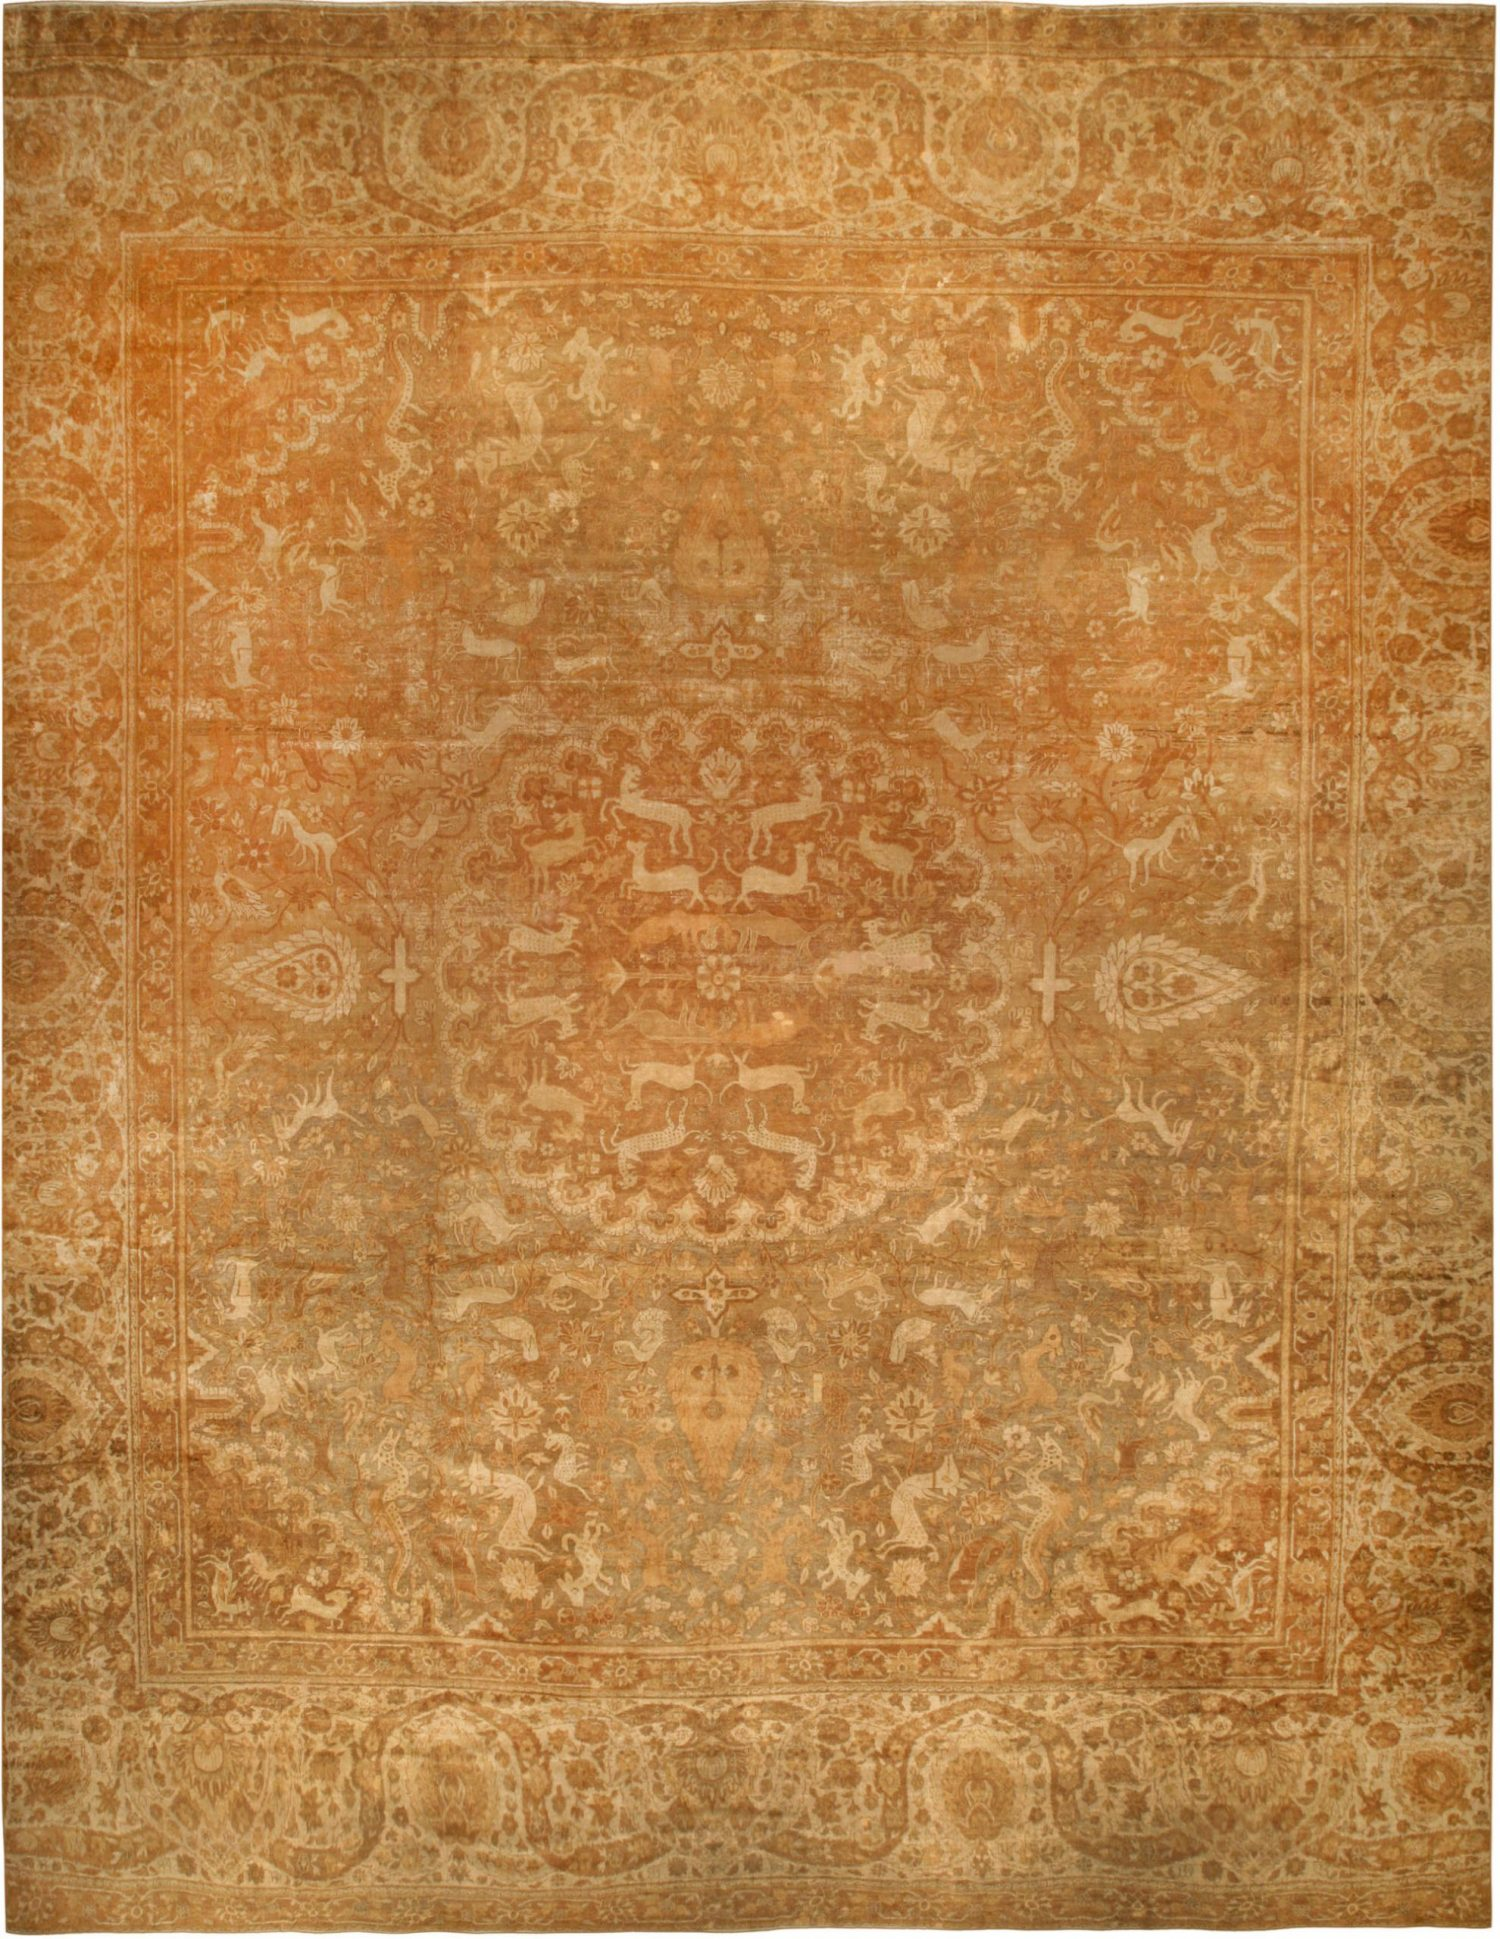 Oversized Vintage Indian Amritsar Rug BB6706